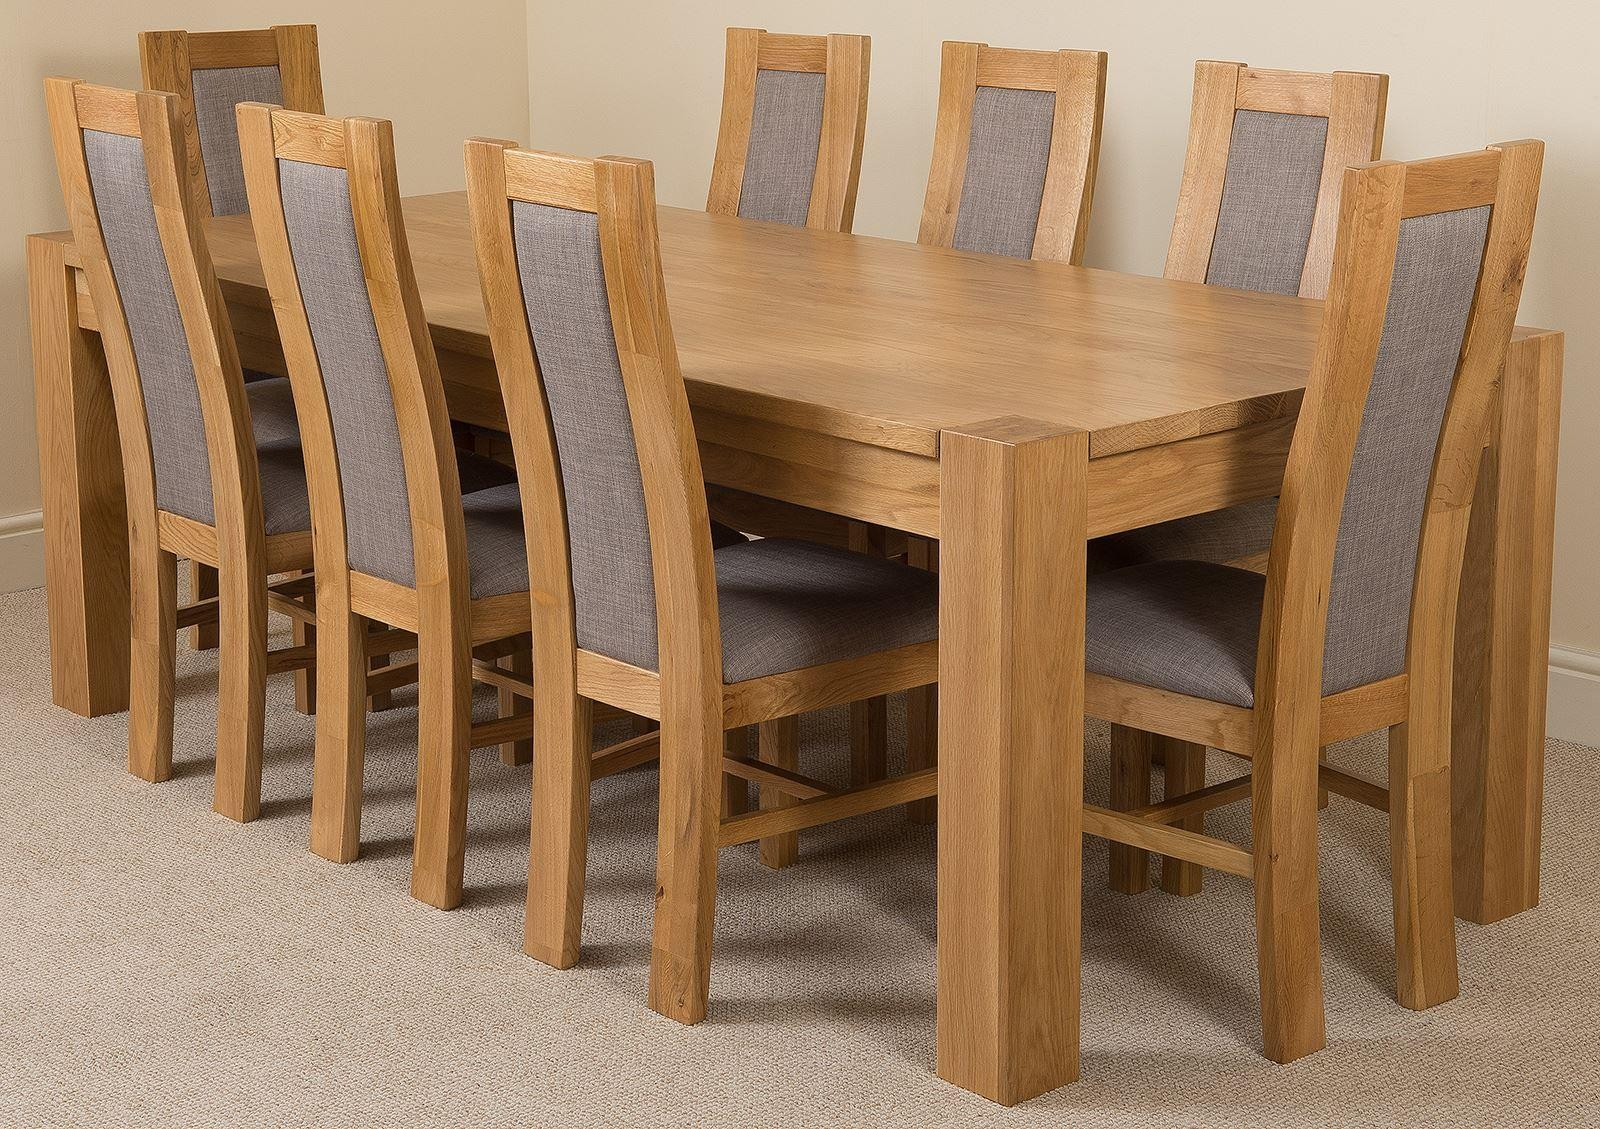 Magnificent Kuba Oak Dining Table With 8 Grey Stanford Dining Chairs Cjindustries Chair Design For Home Cjindustriesco